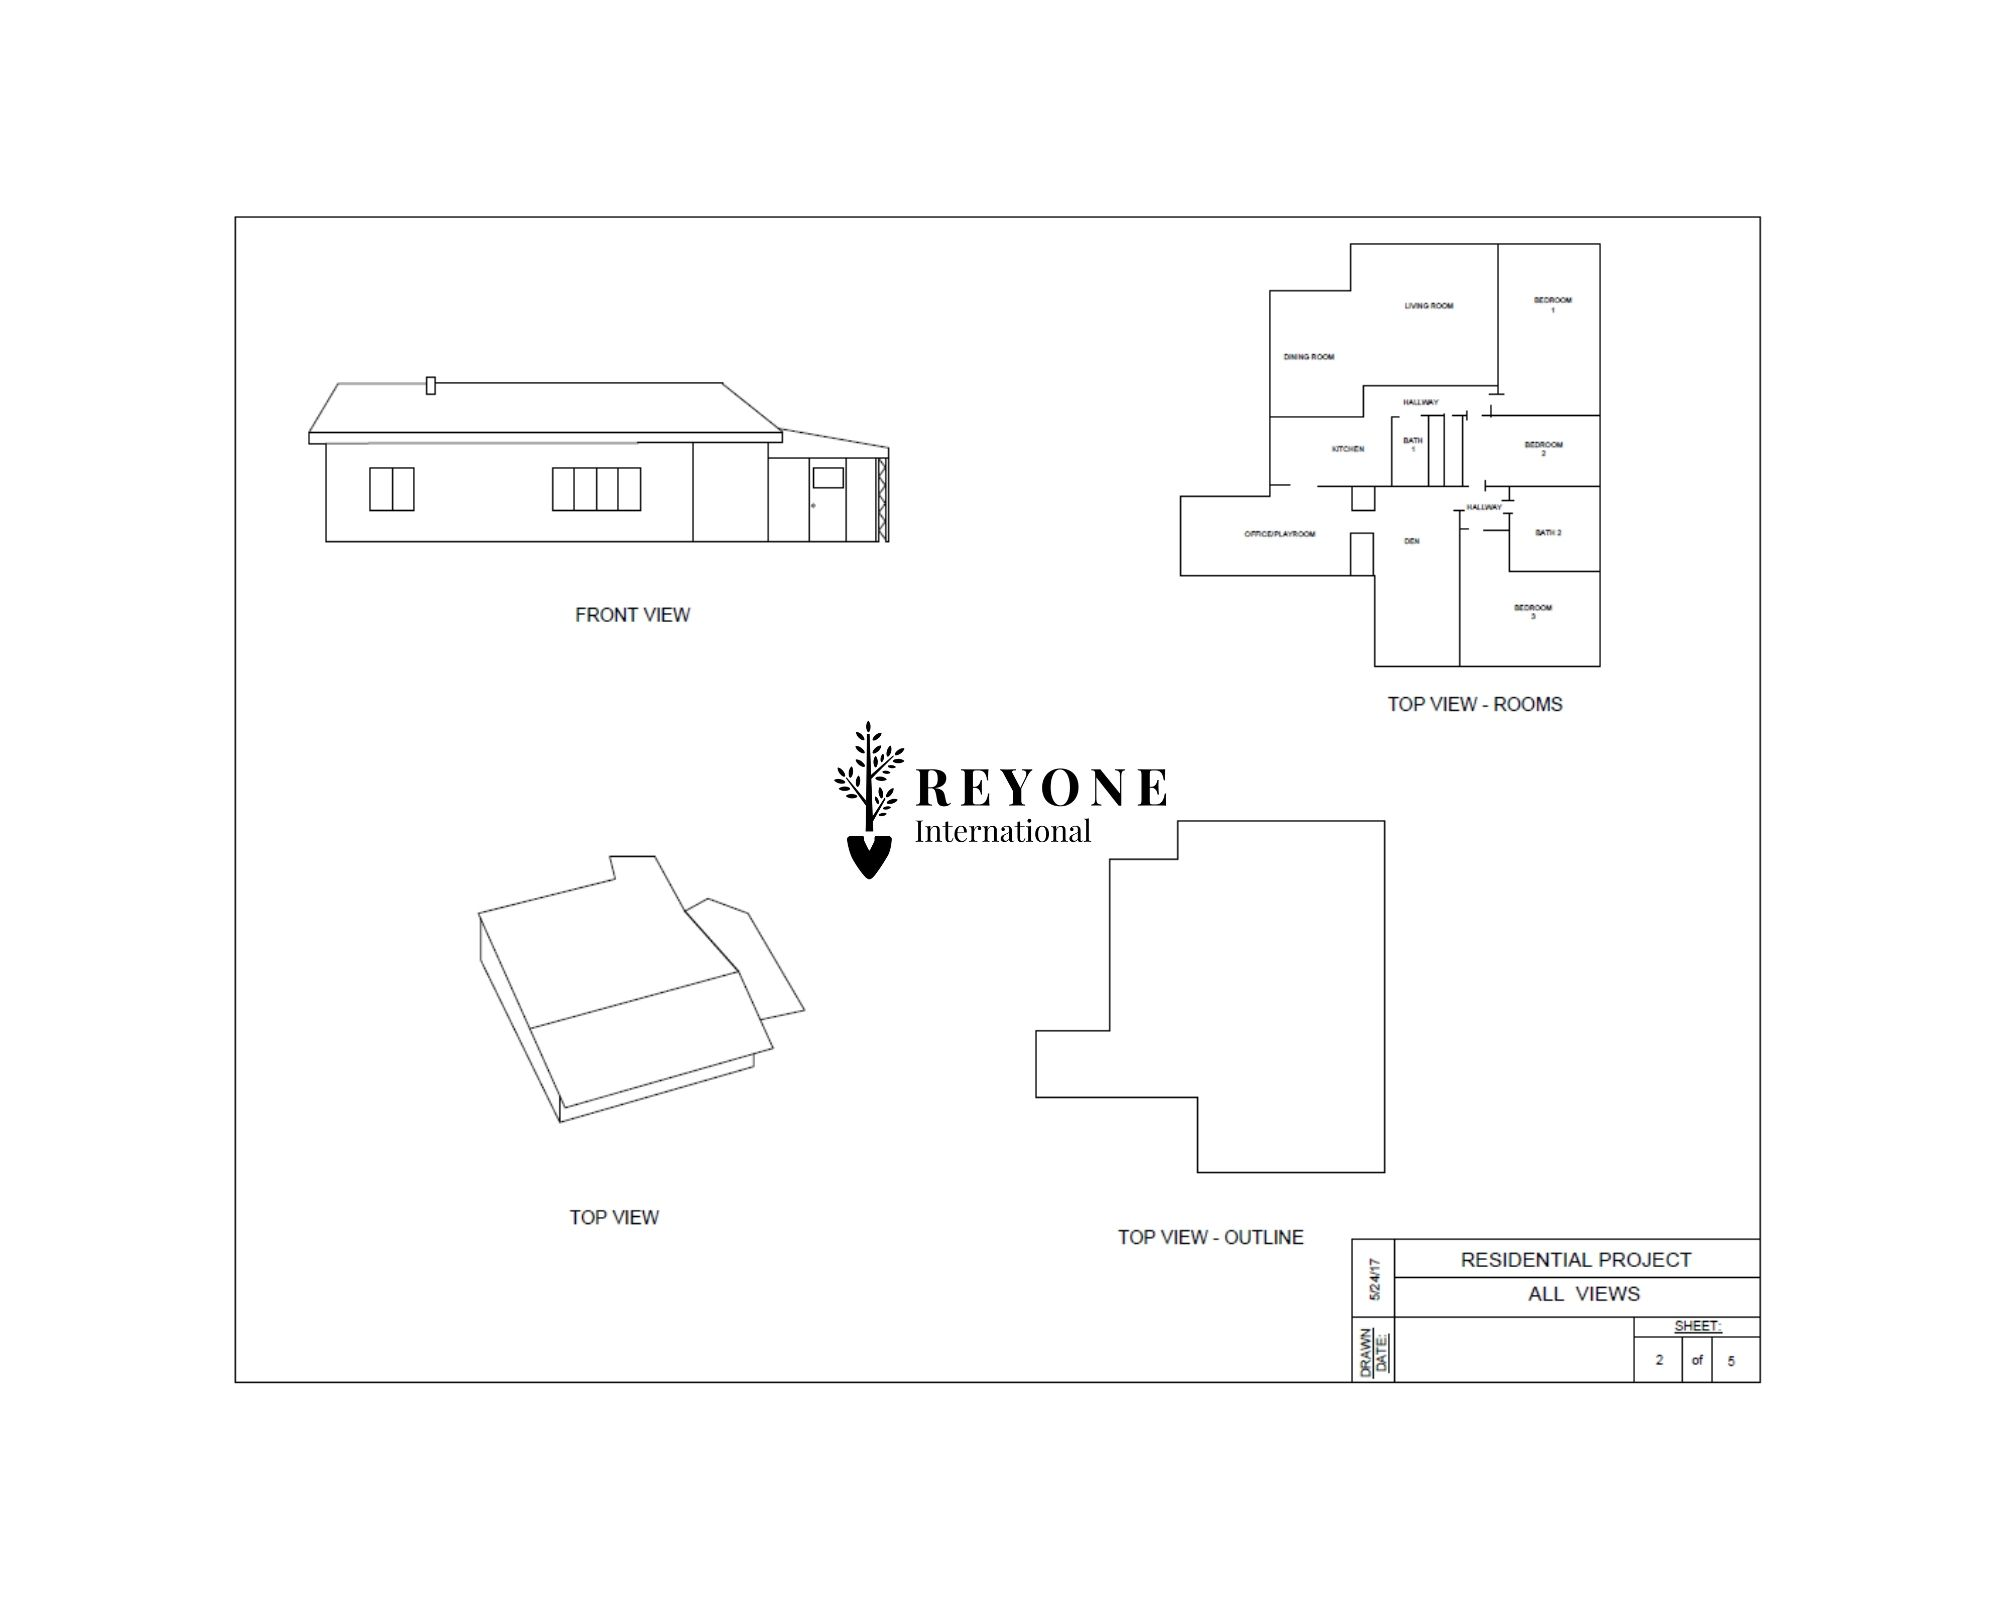 Simple Residential Design Layout.jpg